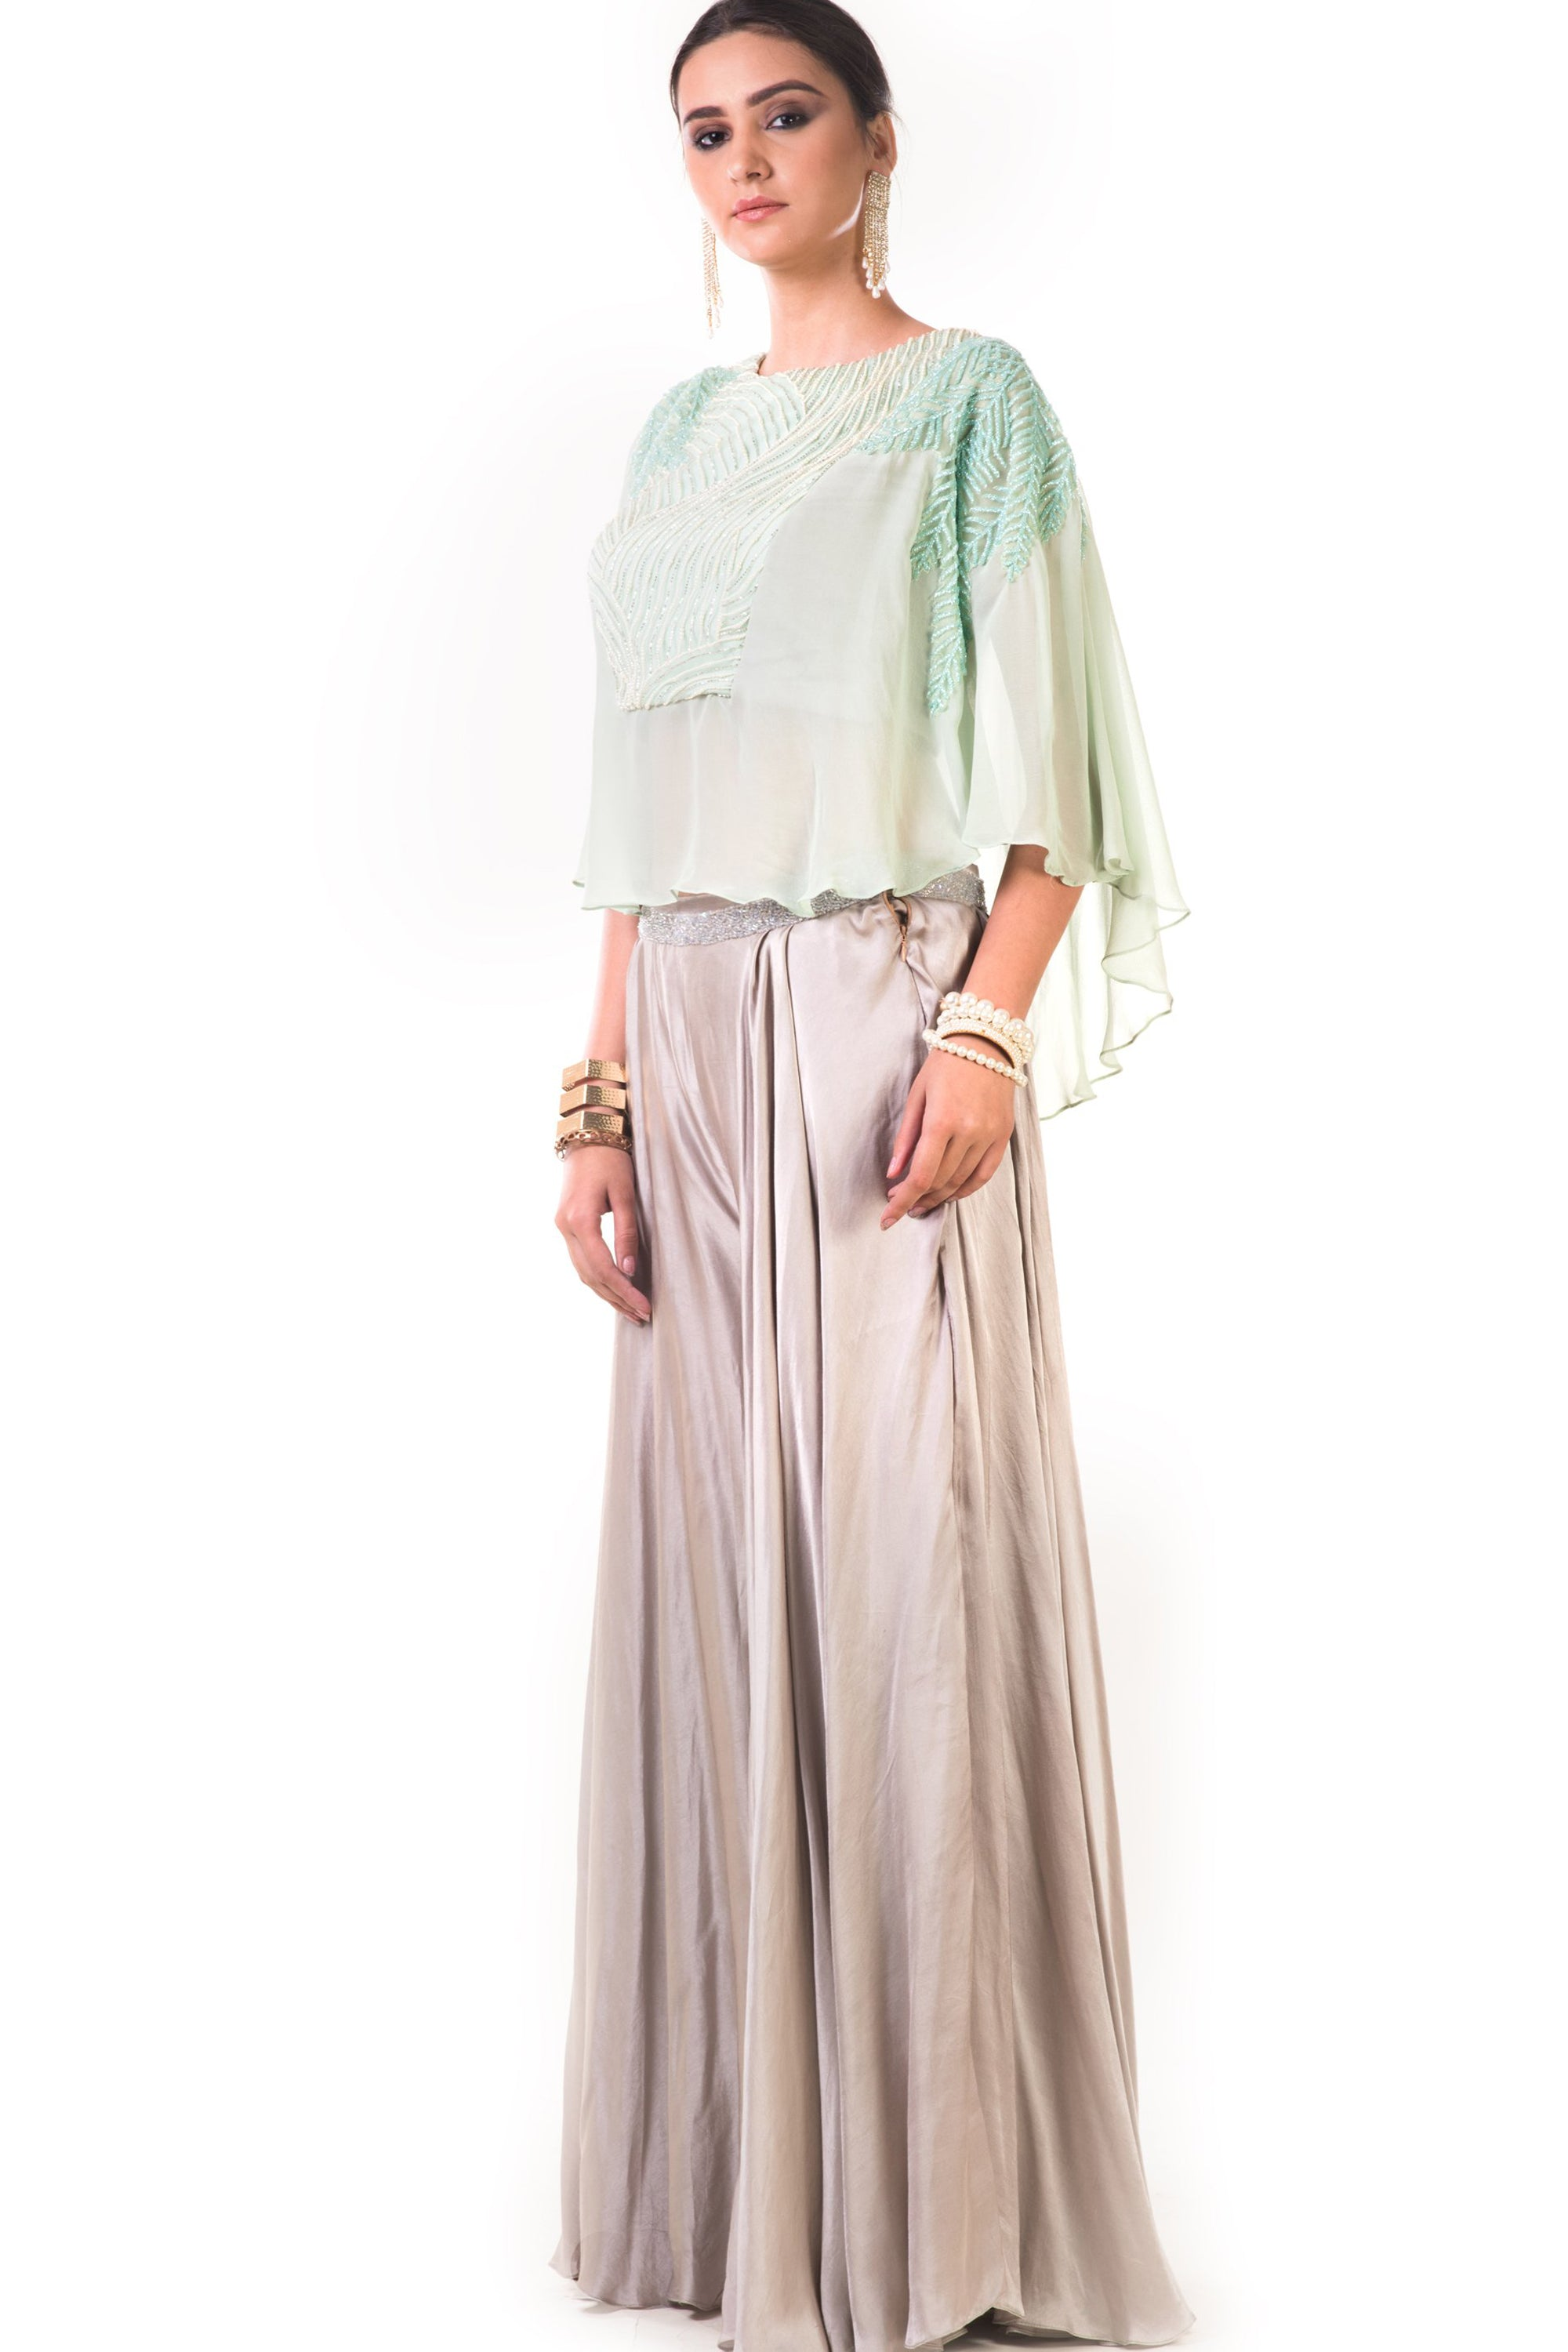 Aqua Green Cape Blouse With Grey Palazzo Pants